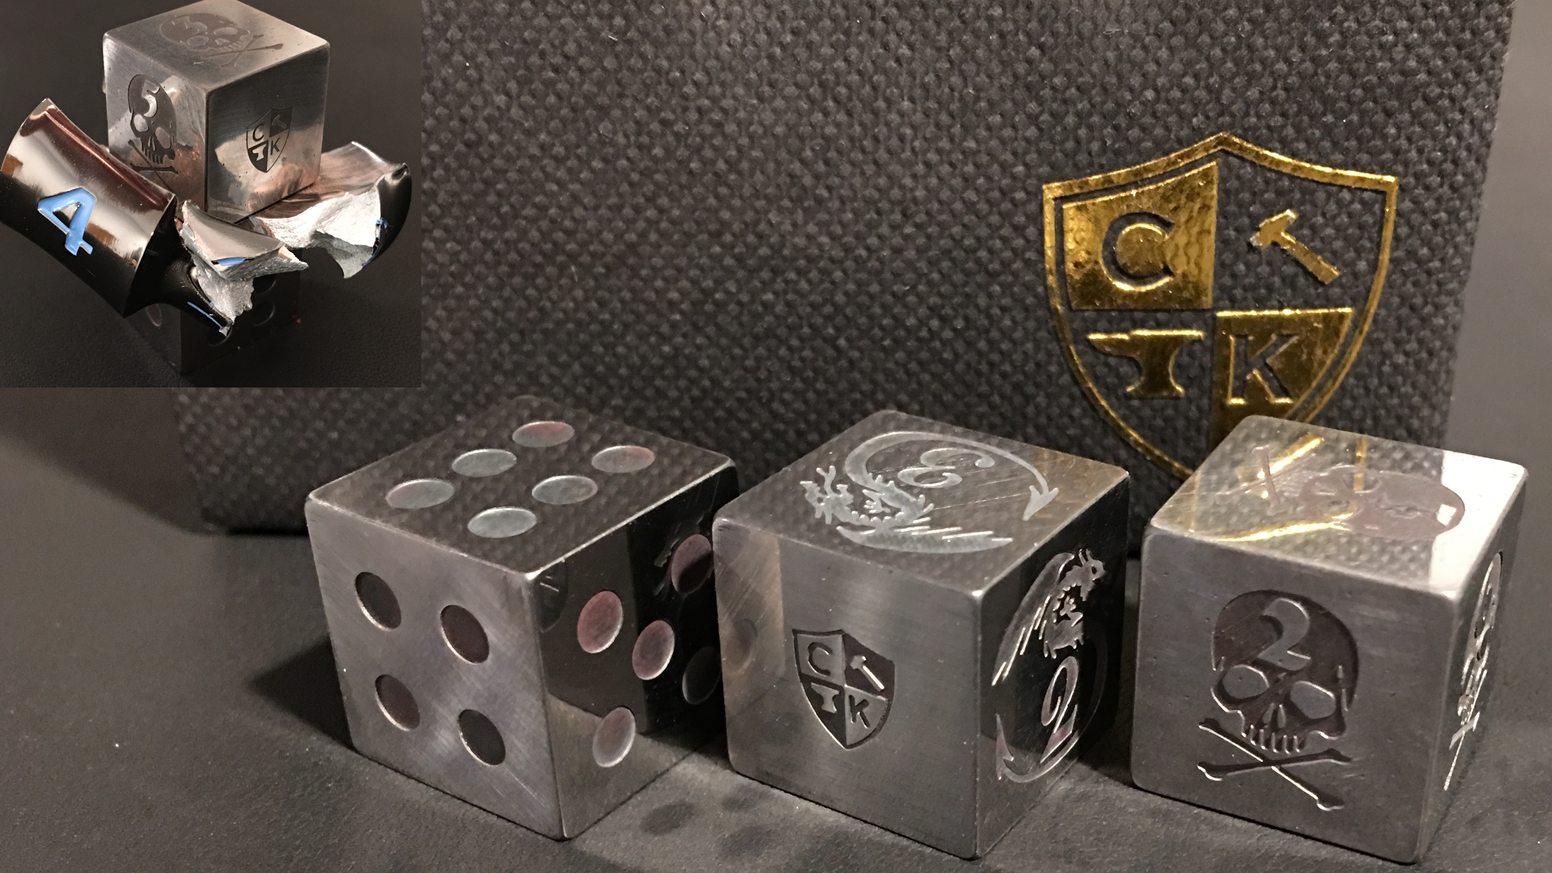 Tool Steel Metal Dice - The Strongest Dice Ever Made!